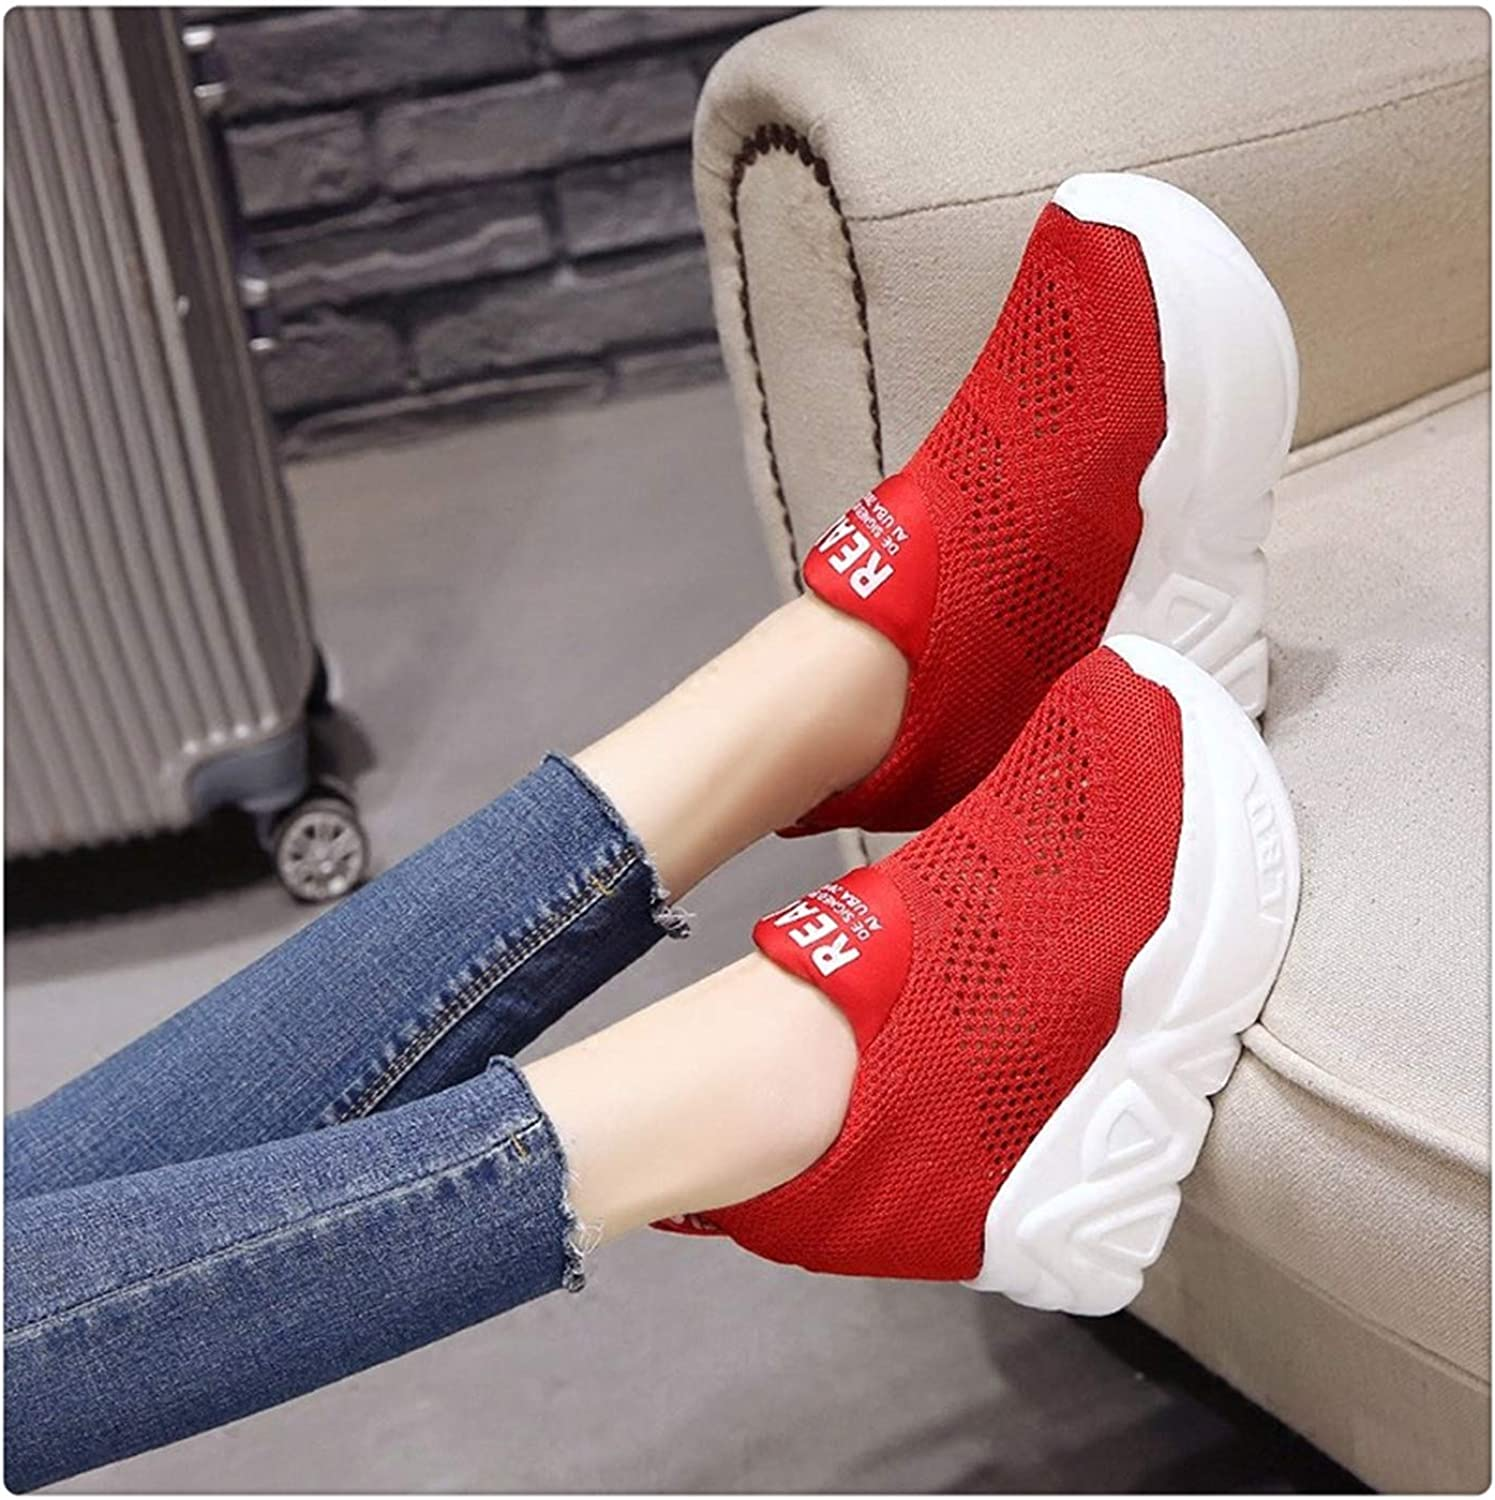 Xjizm 2018 Summer Breathable Mesh Sneakers Hidden Increasing shoes Women Wedge Casual shoes Slip on High Heels 11 cm Platform shoes Red 6.5